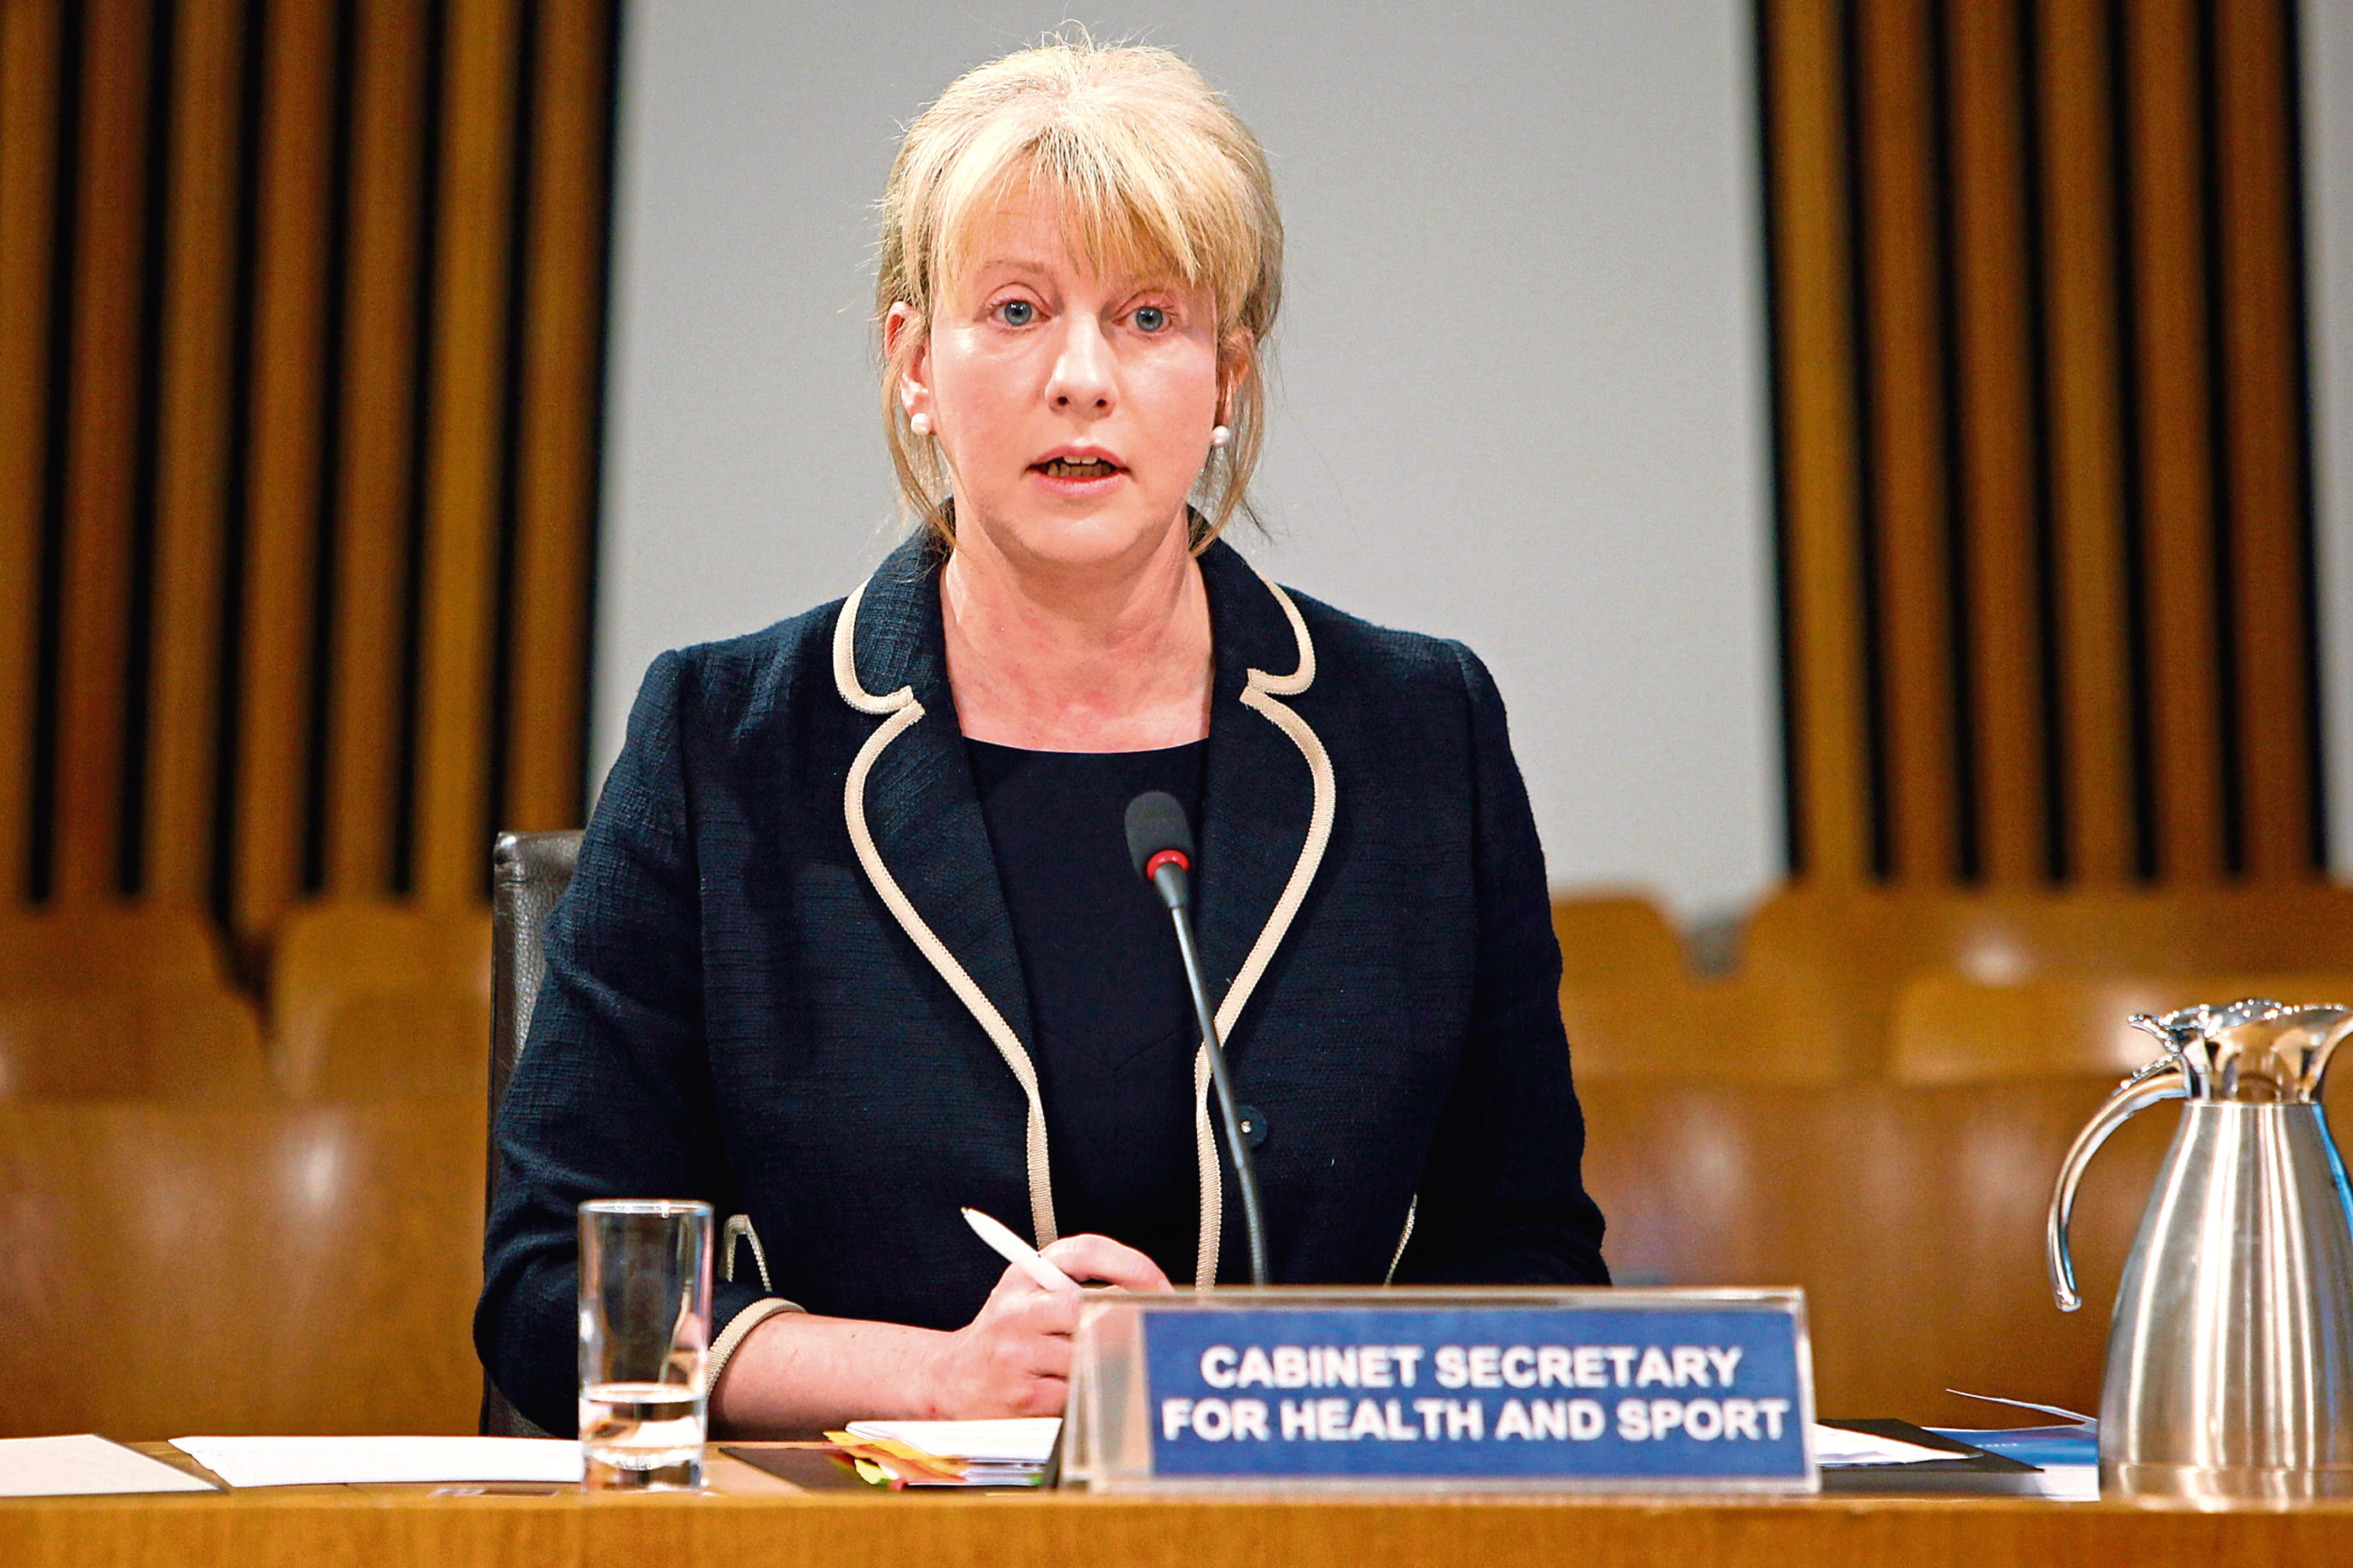 Shona Robison (Andrew Cowan/Scottish Parliament)